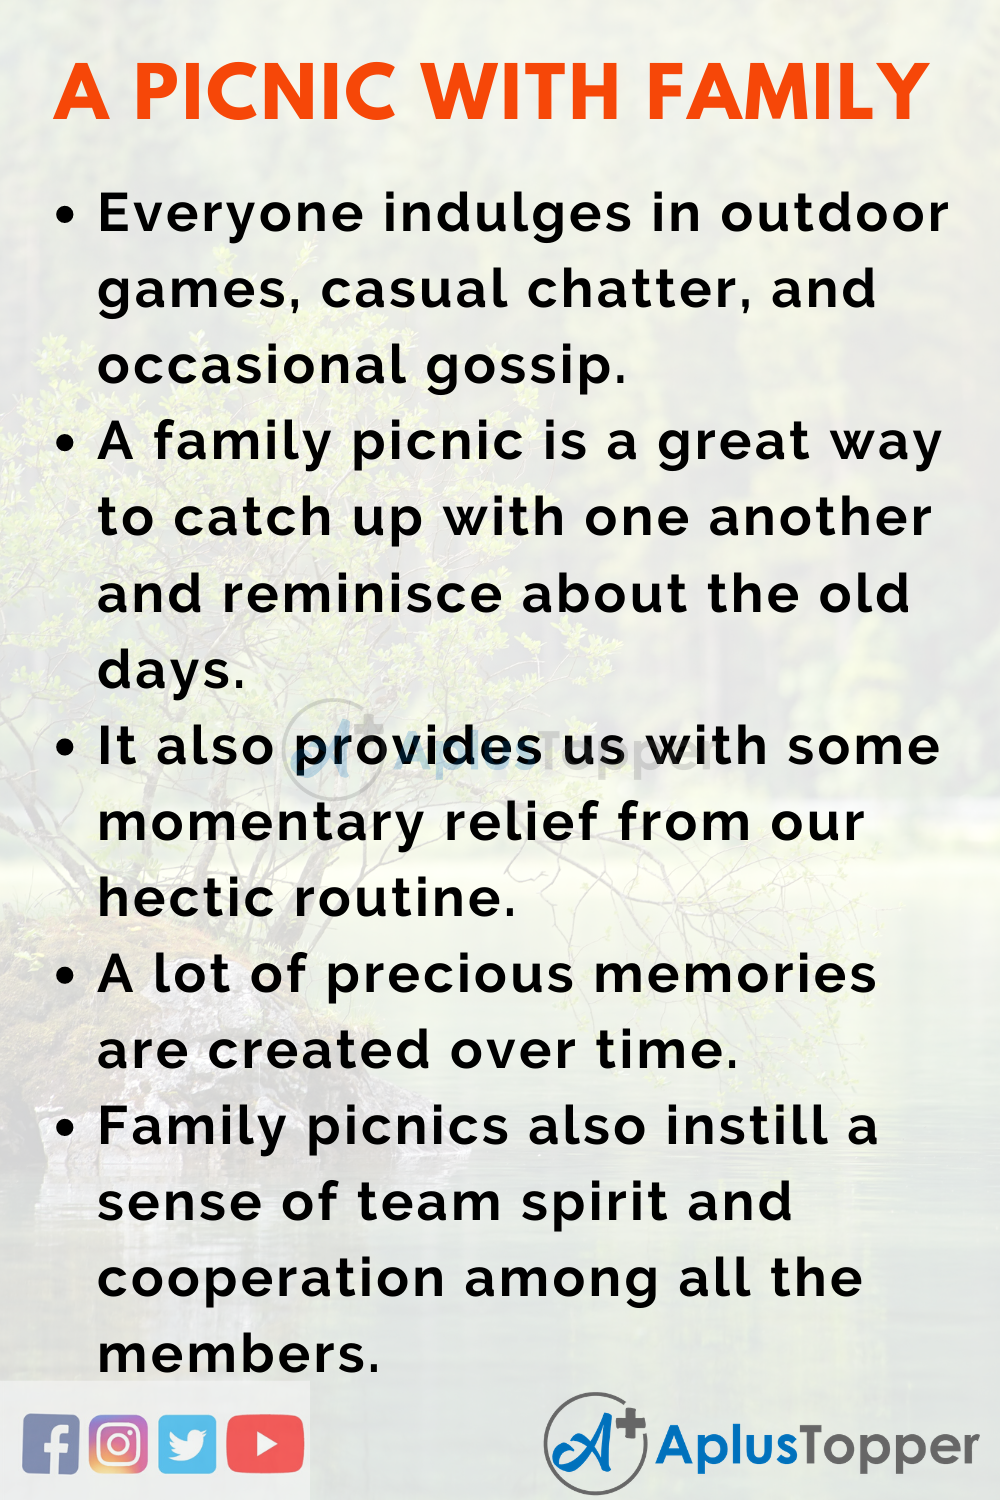 Essay about a Picnic with Family